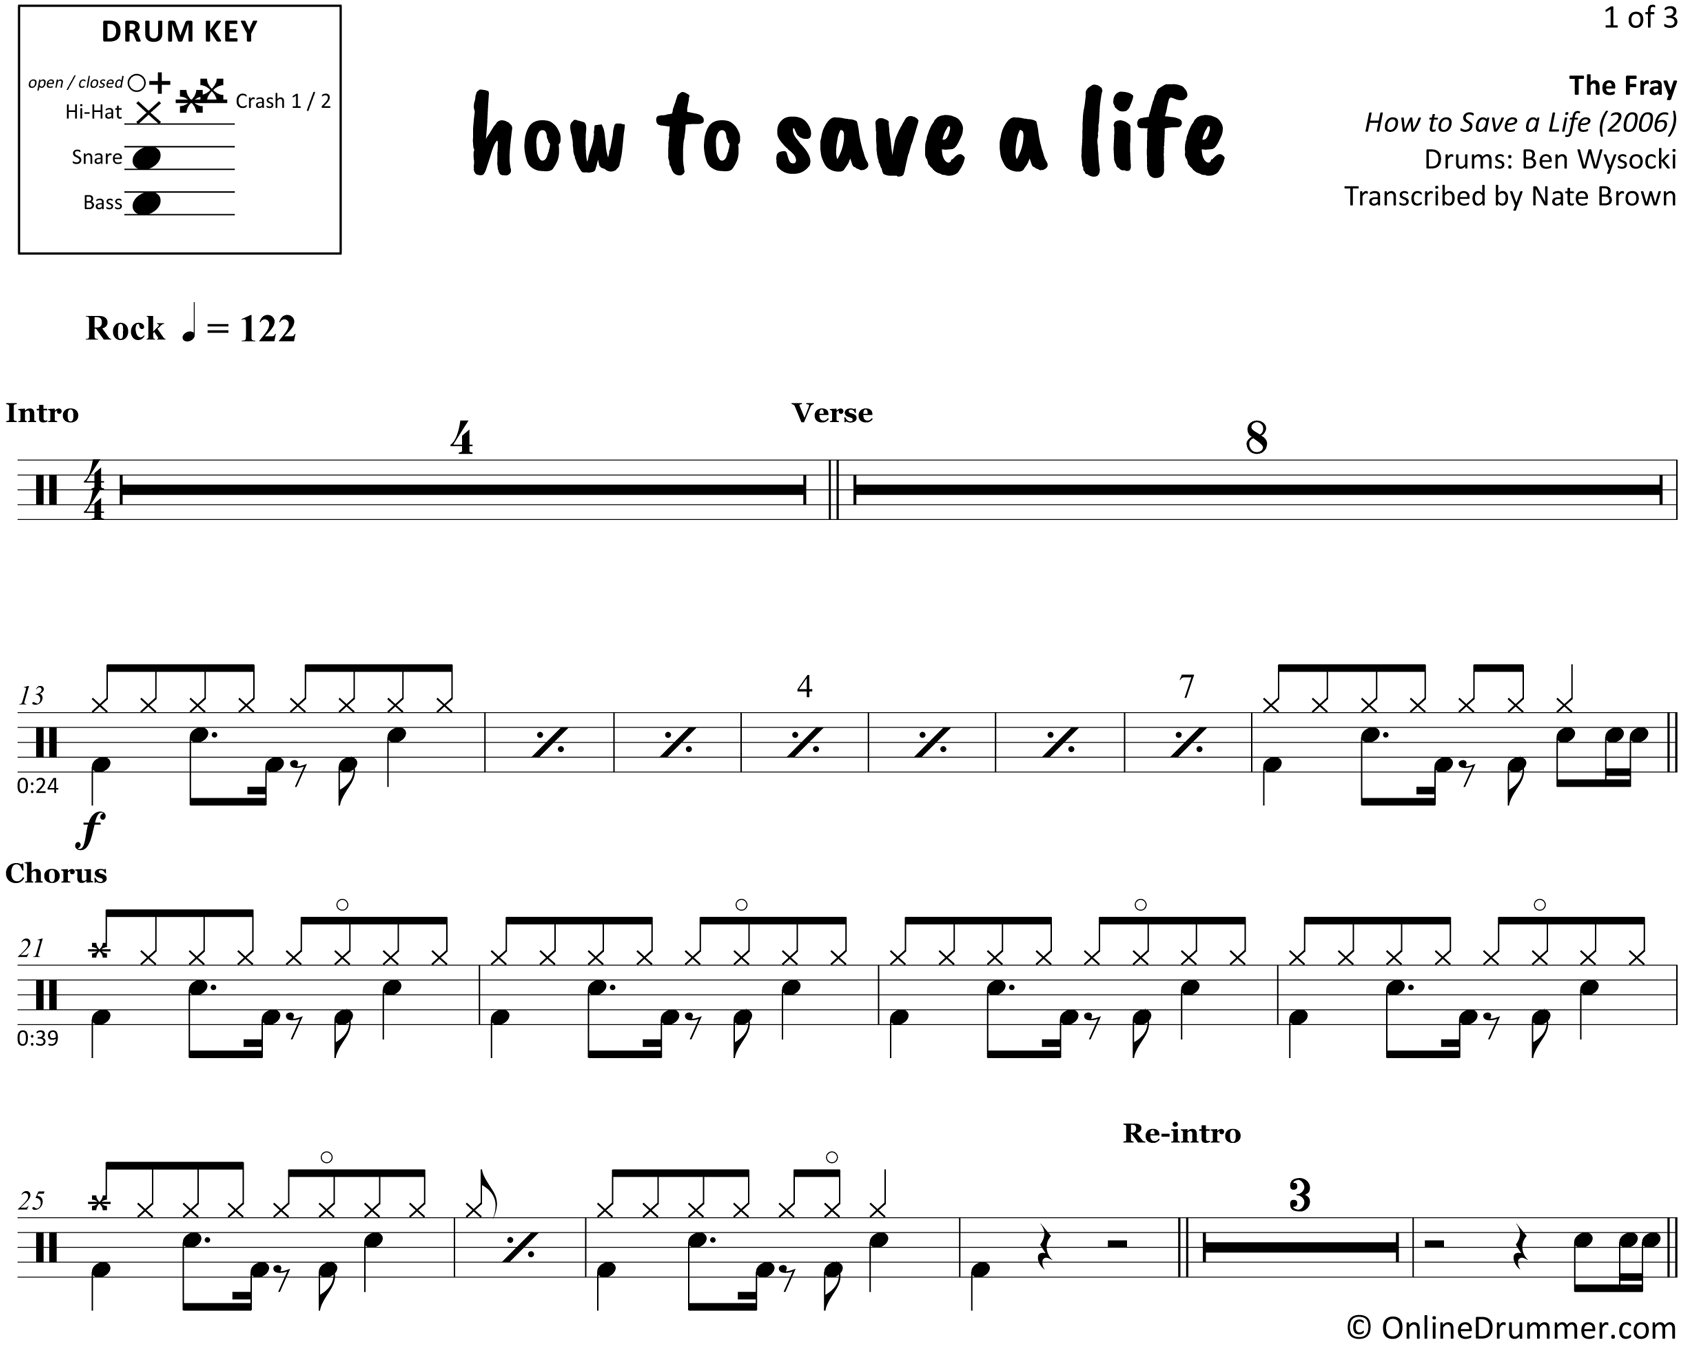 How to Save a Life - The Fray - Drum Sheet Music